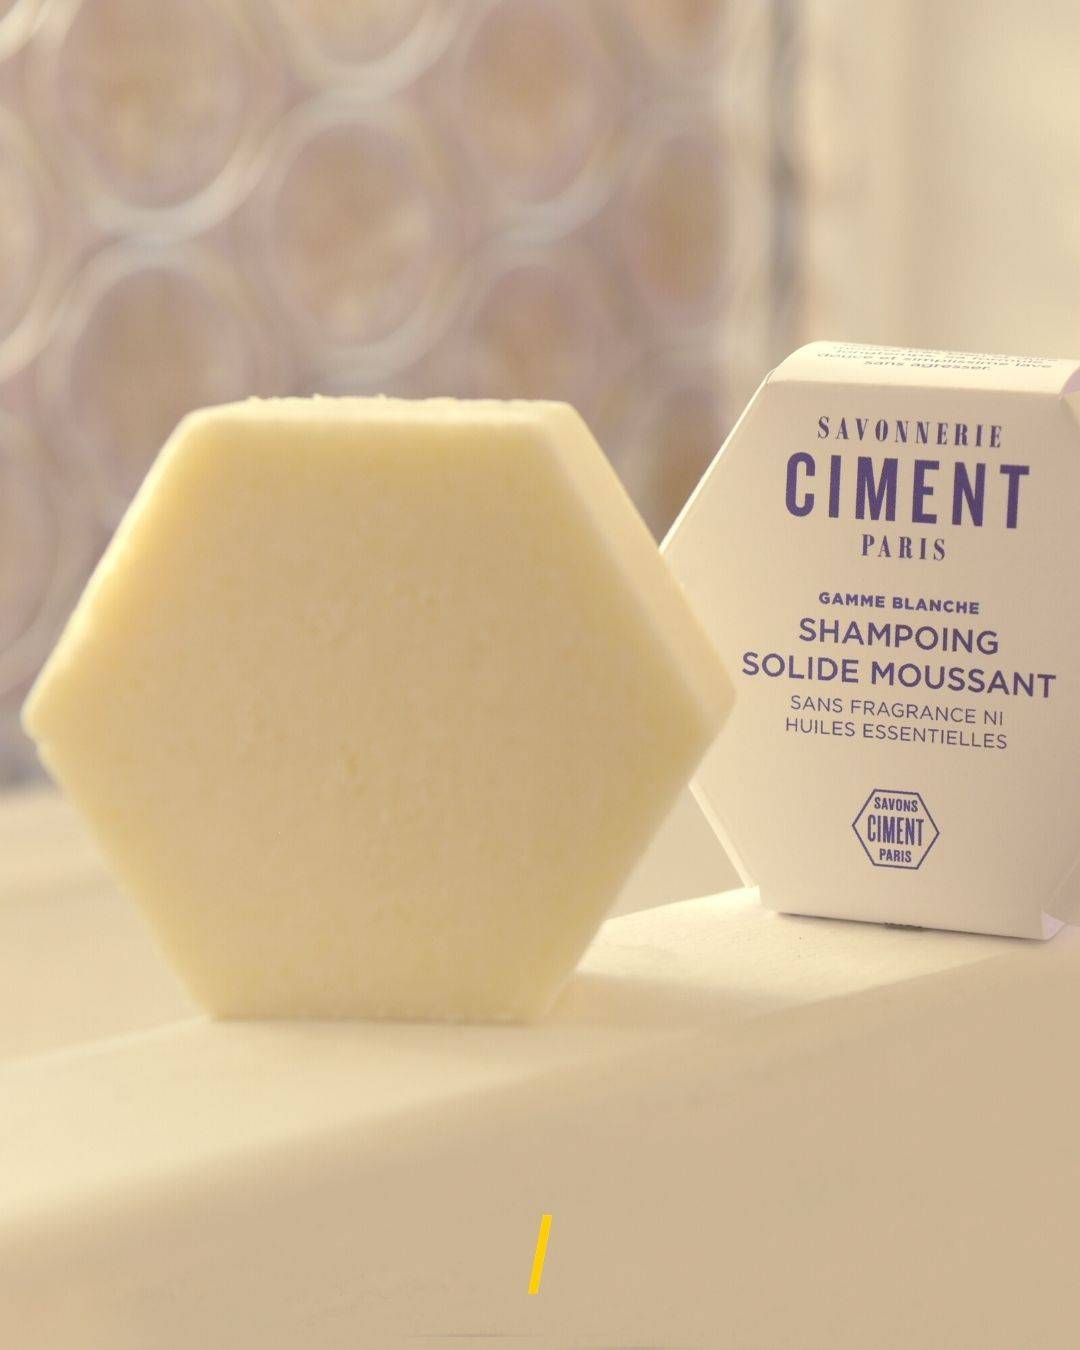 Le shampoing solide - Moussant